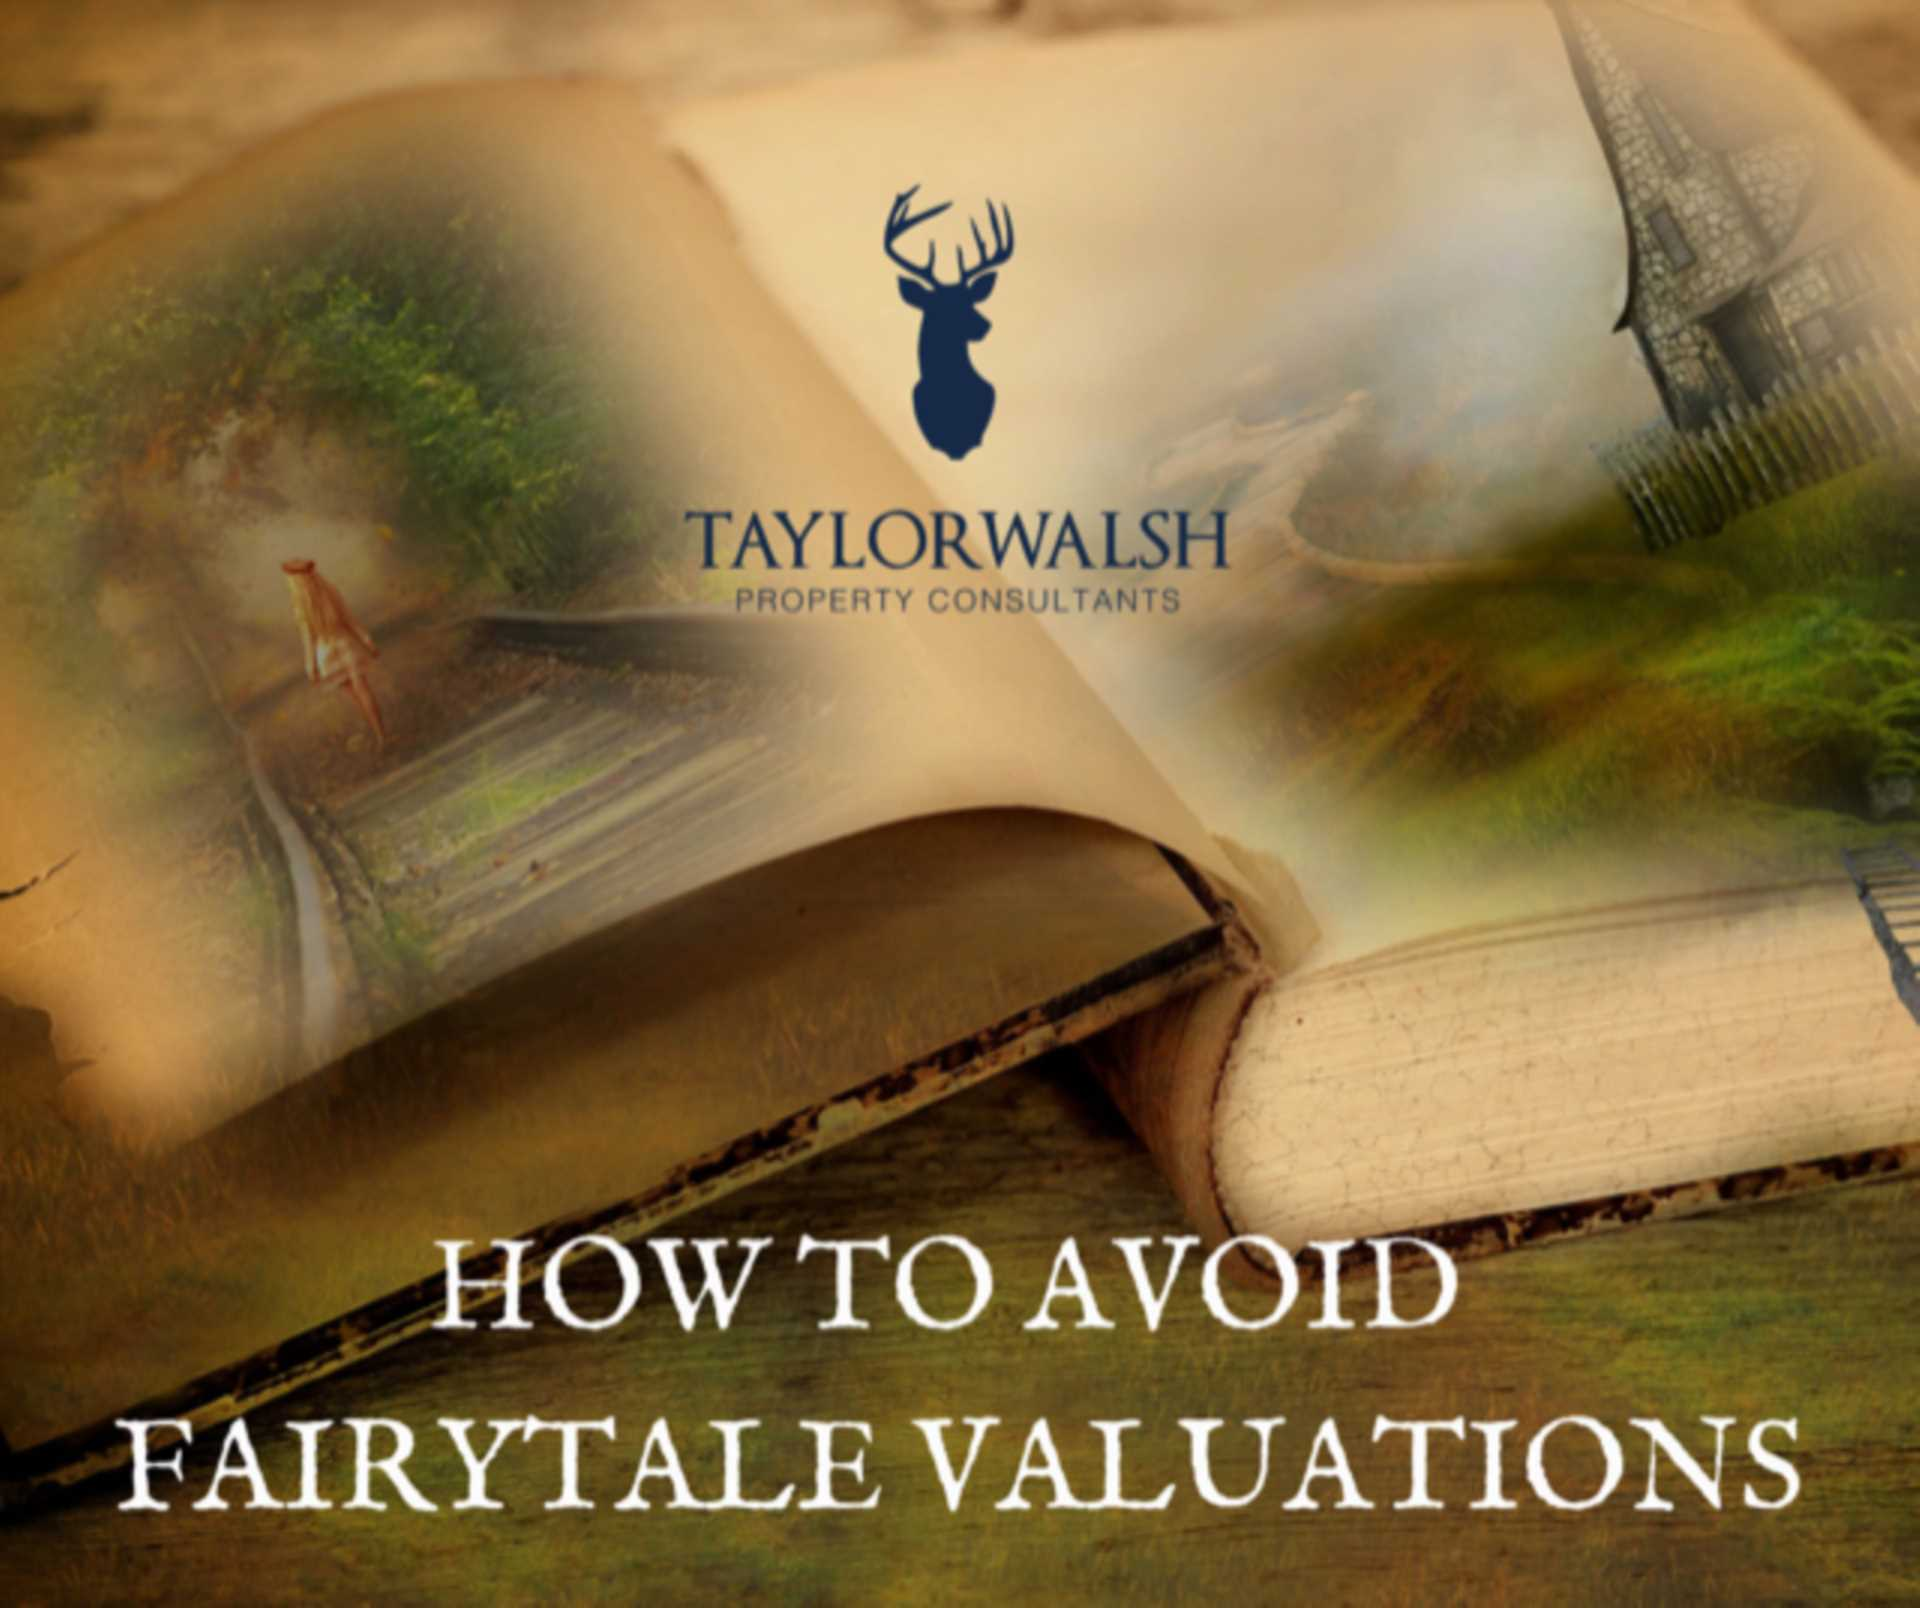 HOW TO AVOID FAIRYTALE VALUATIONS